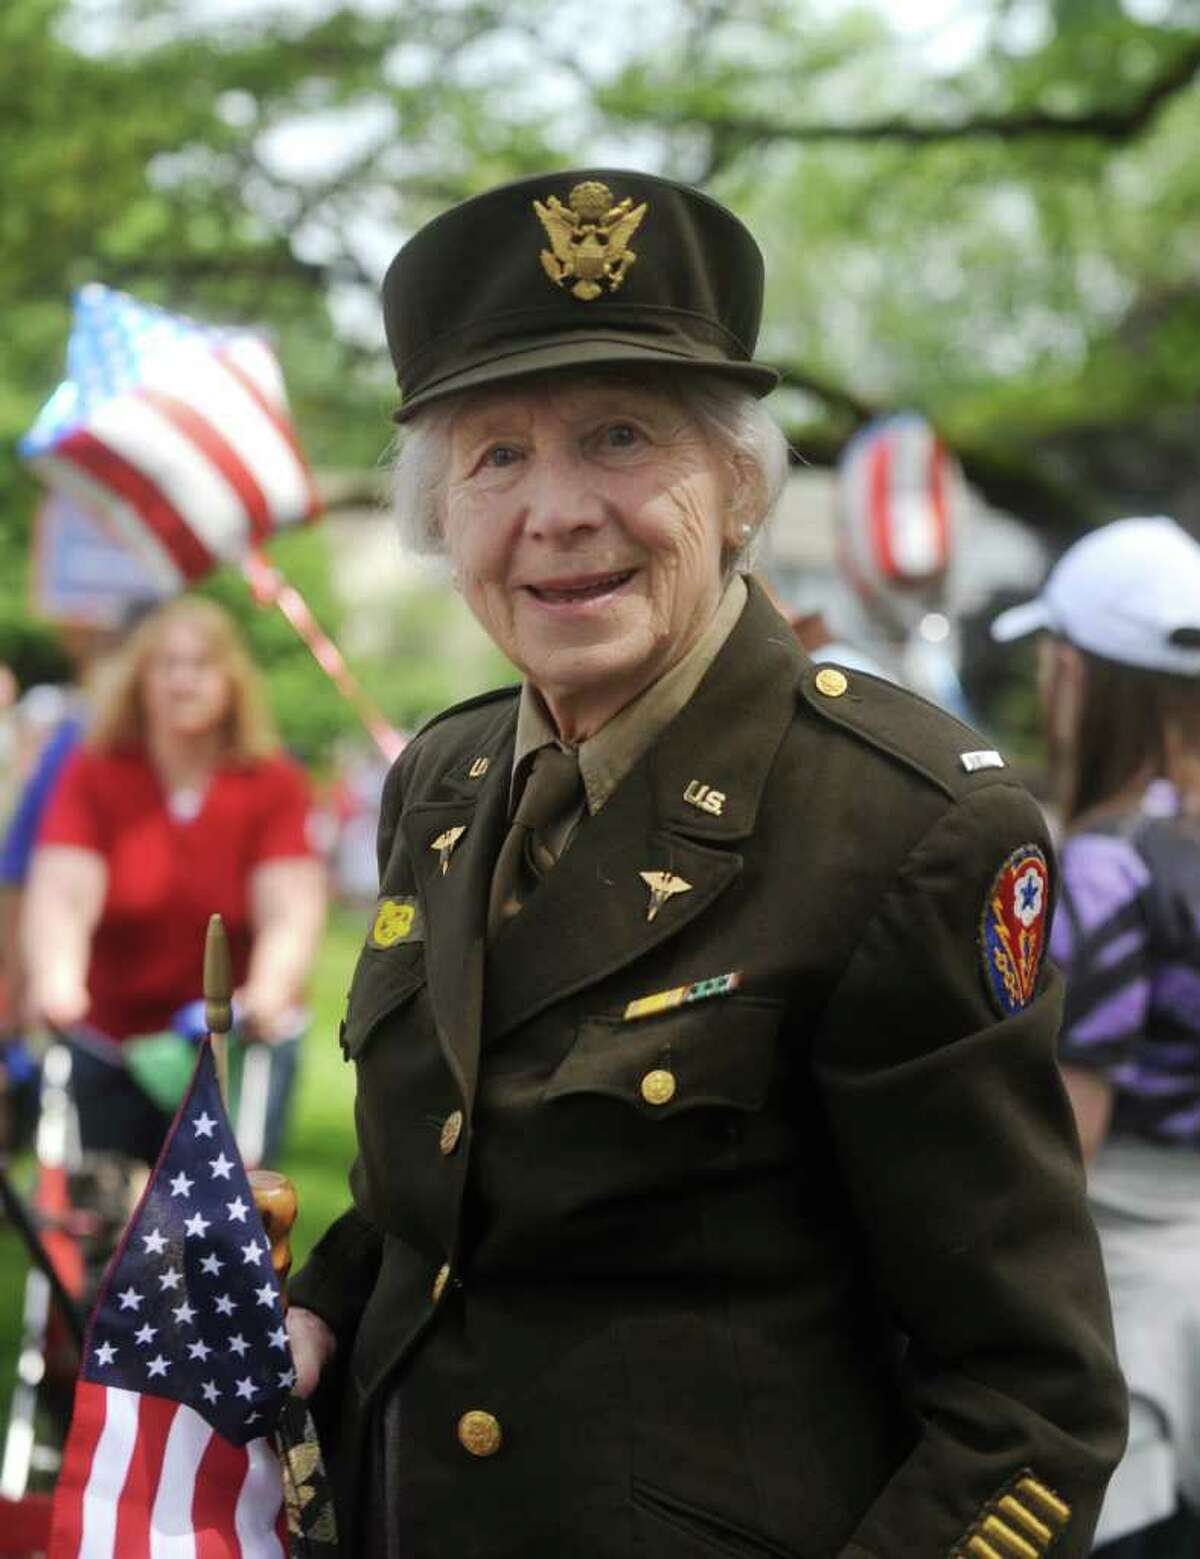 Veteran Helen Roman at the ceremony in Binney Park after the Old Greenwich Memorial Day Parade down Sound Beach Avenue on Monday, May 30, 2011.